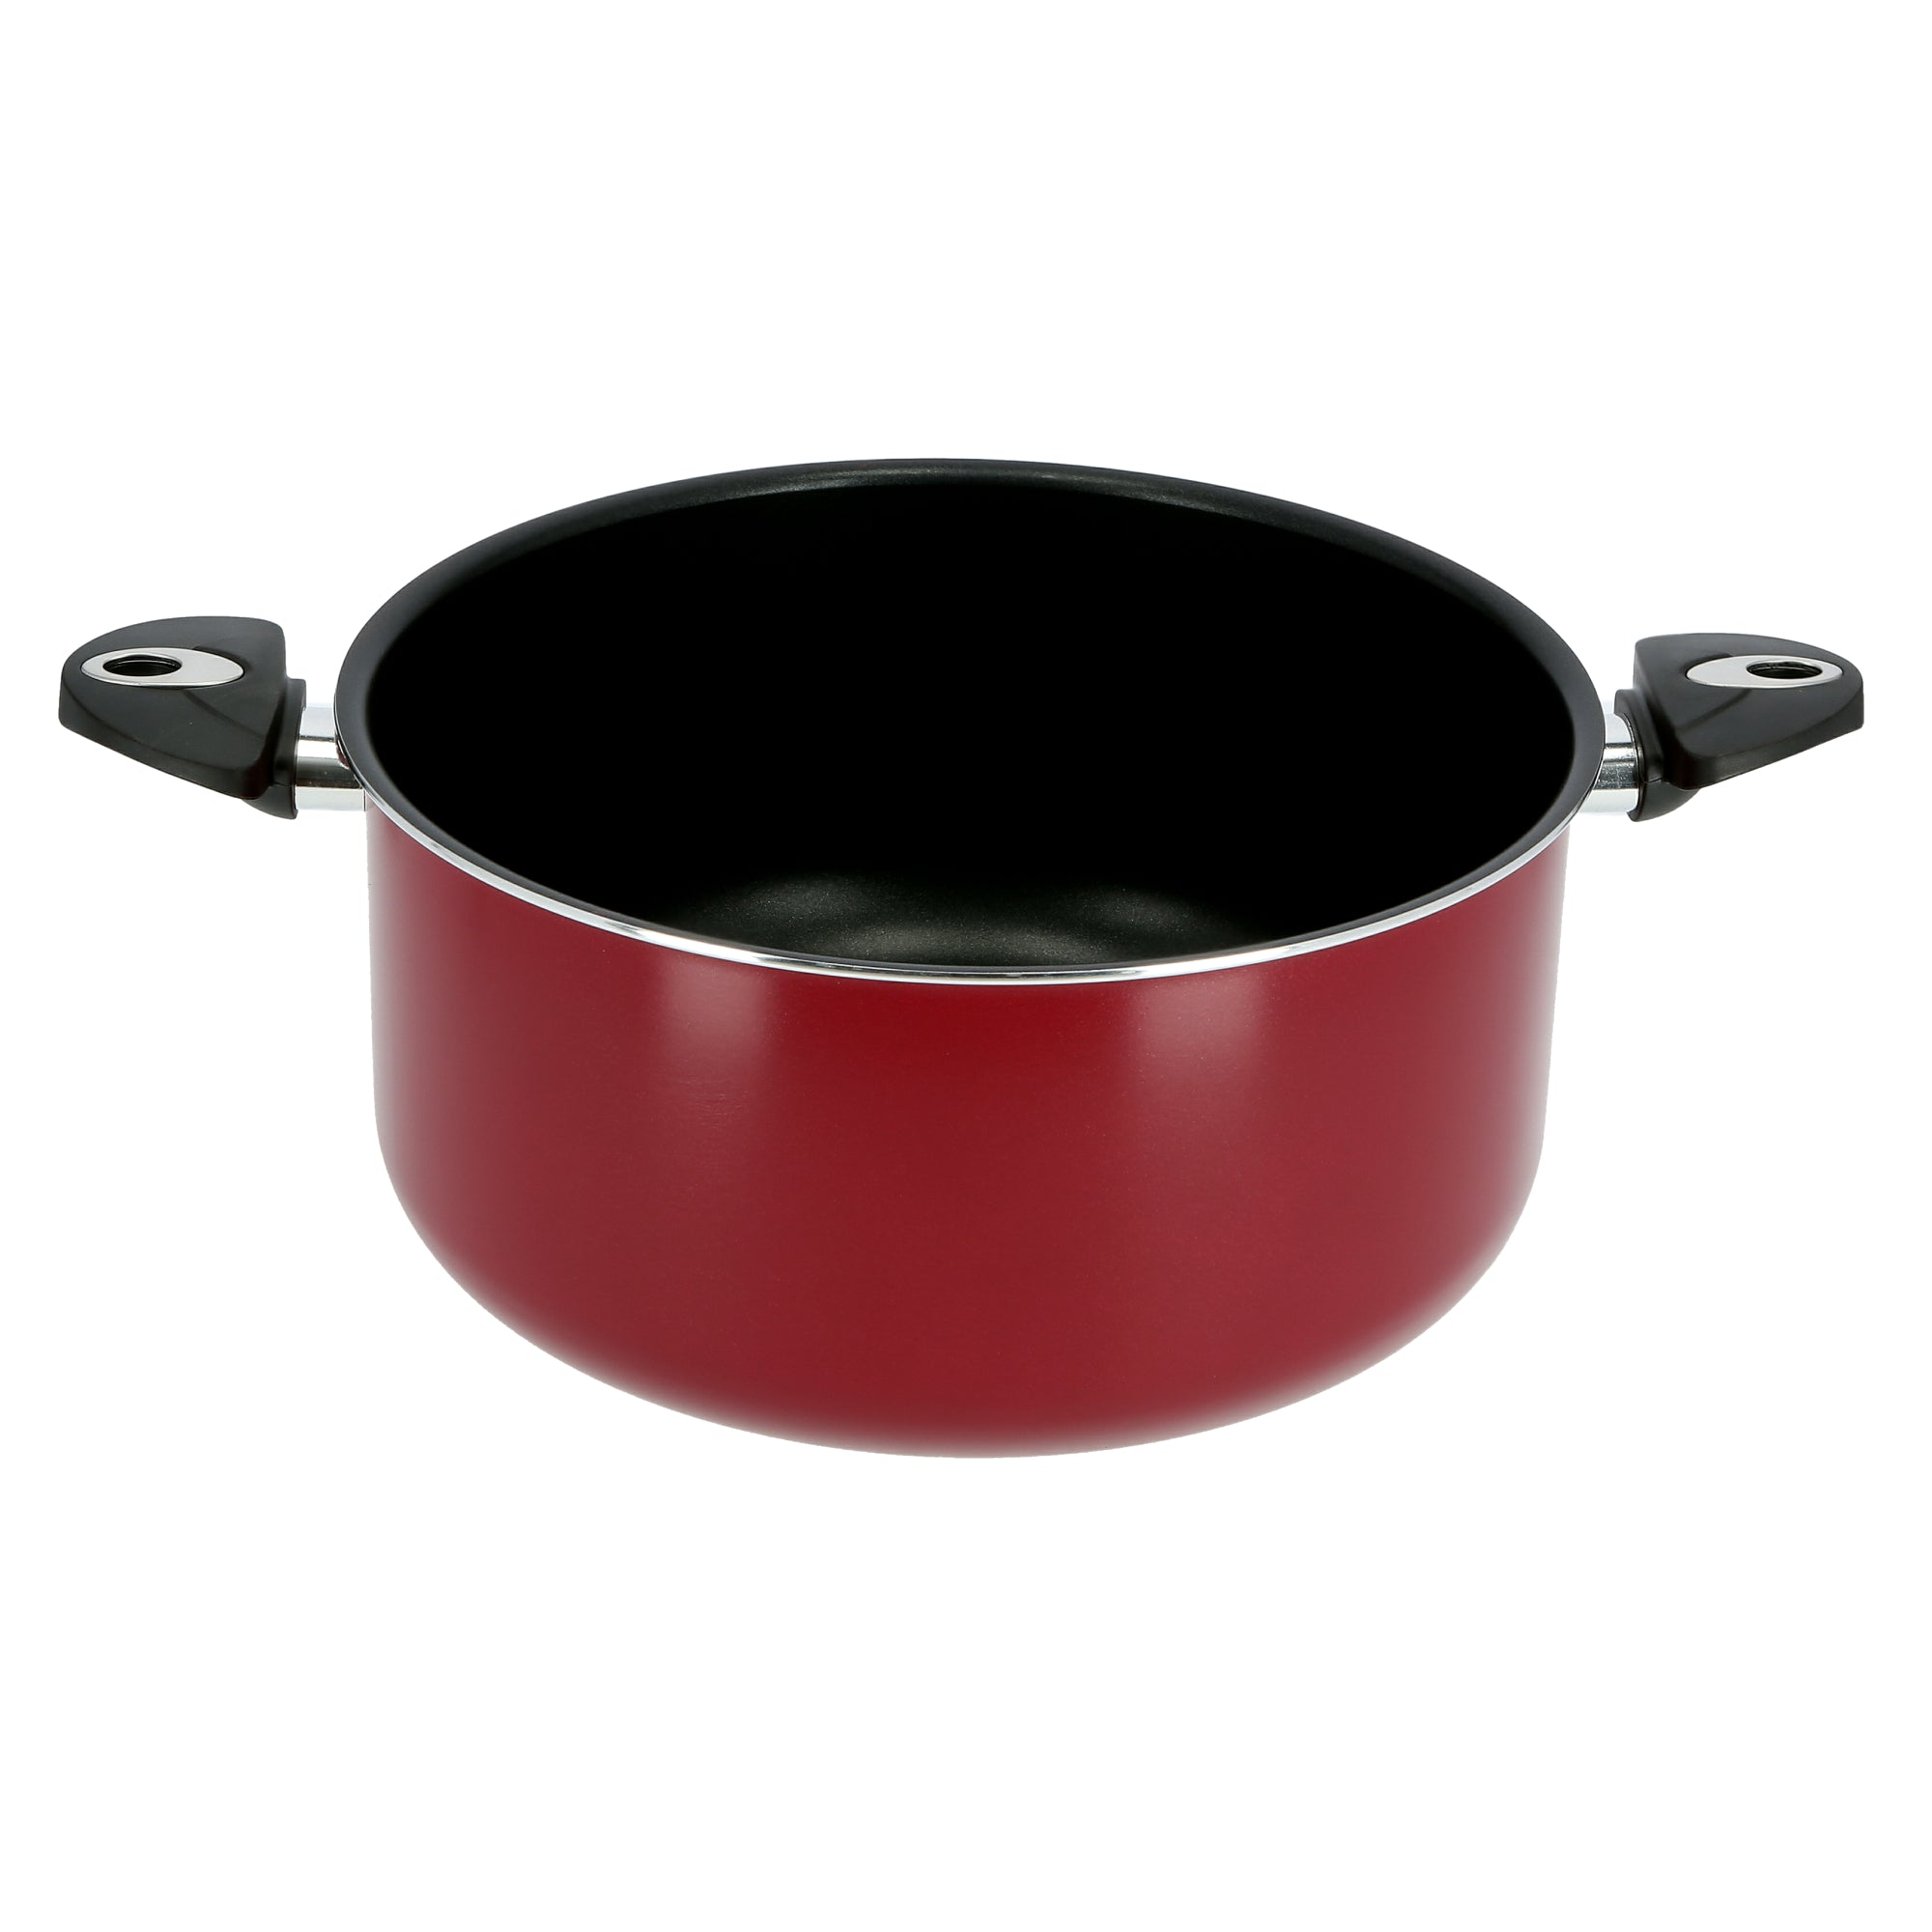 Royalford RF1254C28 Non-Stick Cooking Pot, 28 CM